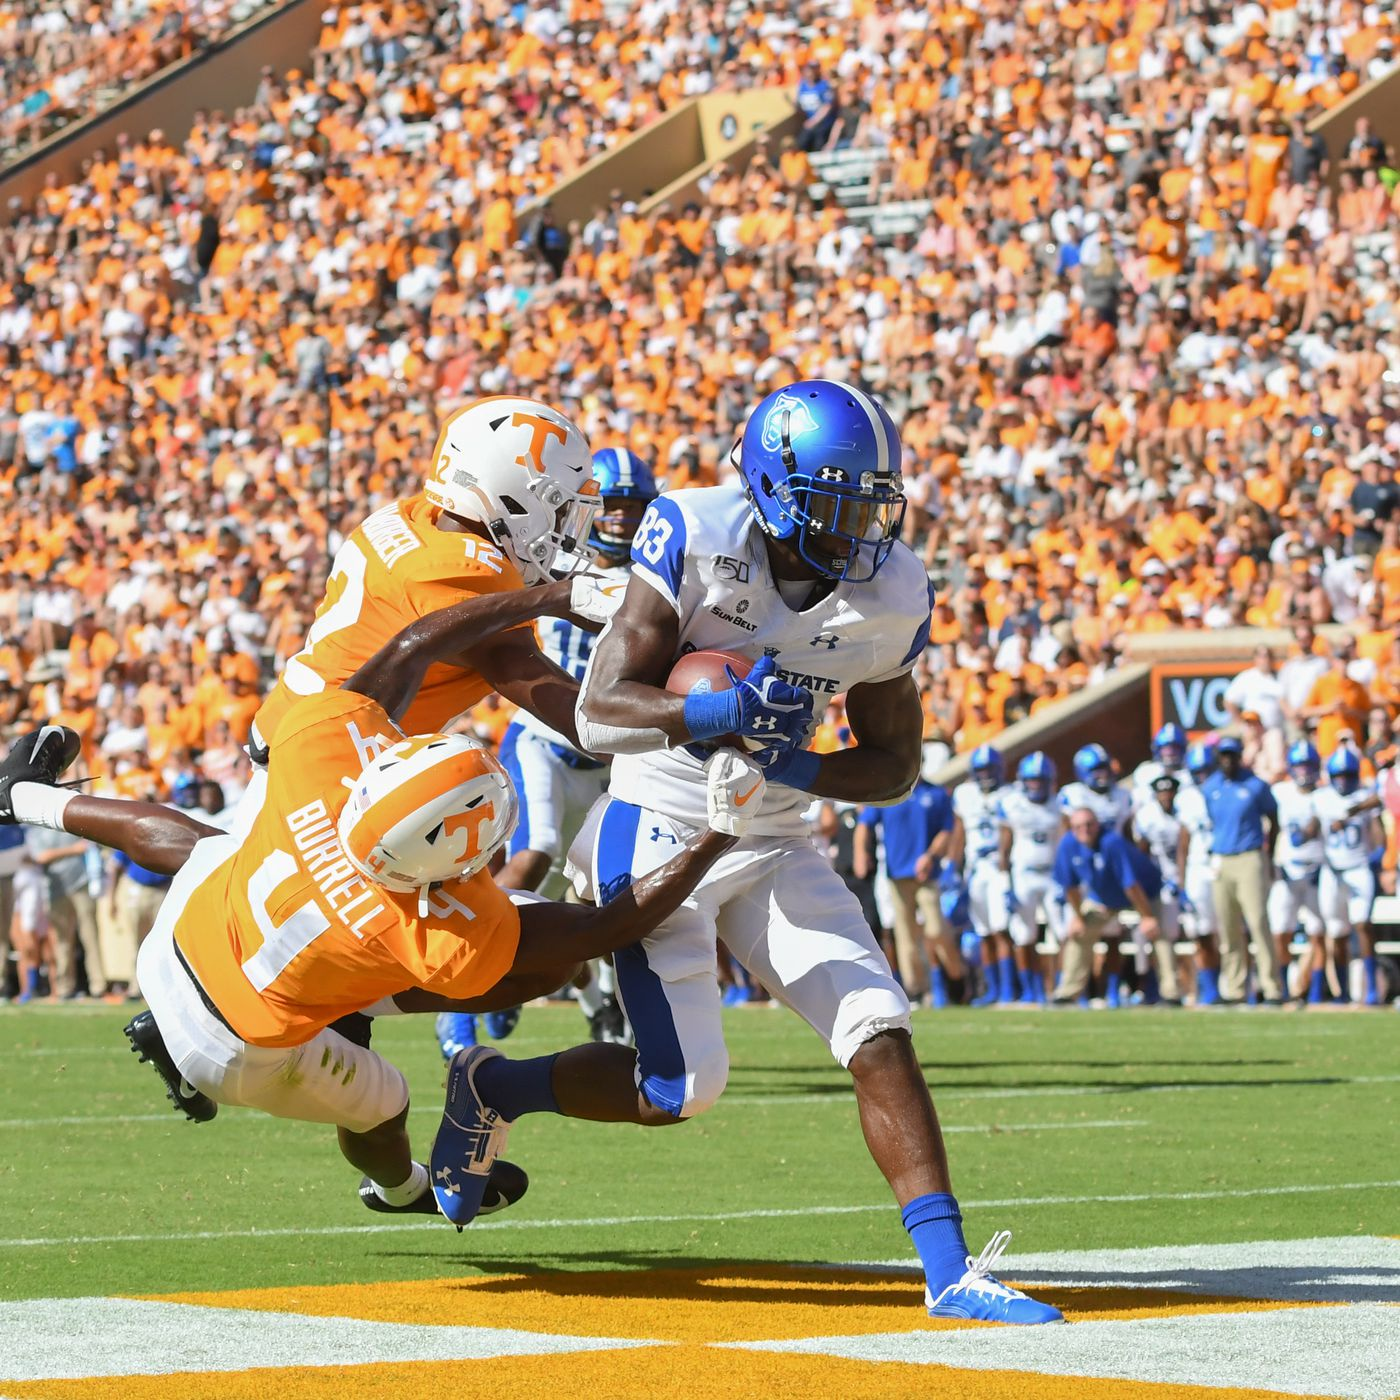 Tennessee Vols Football falls at home to Georgia State